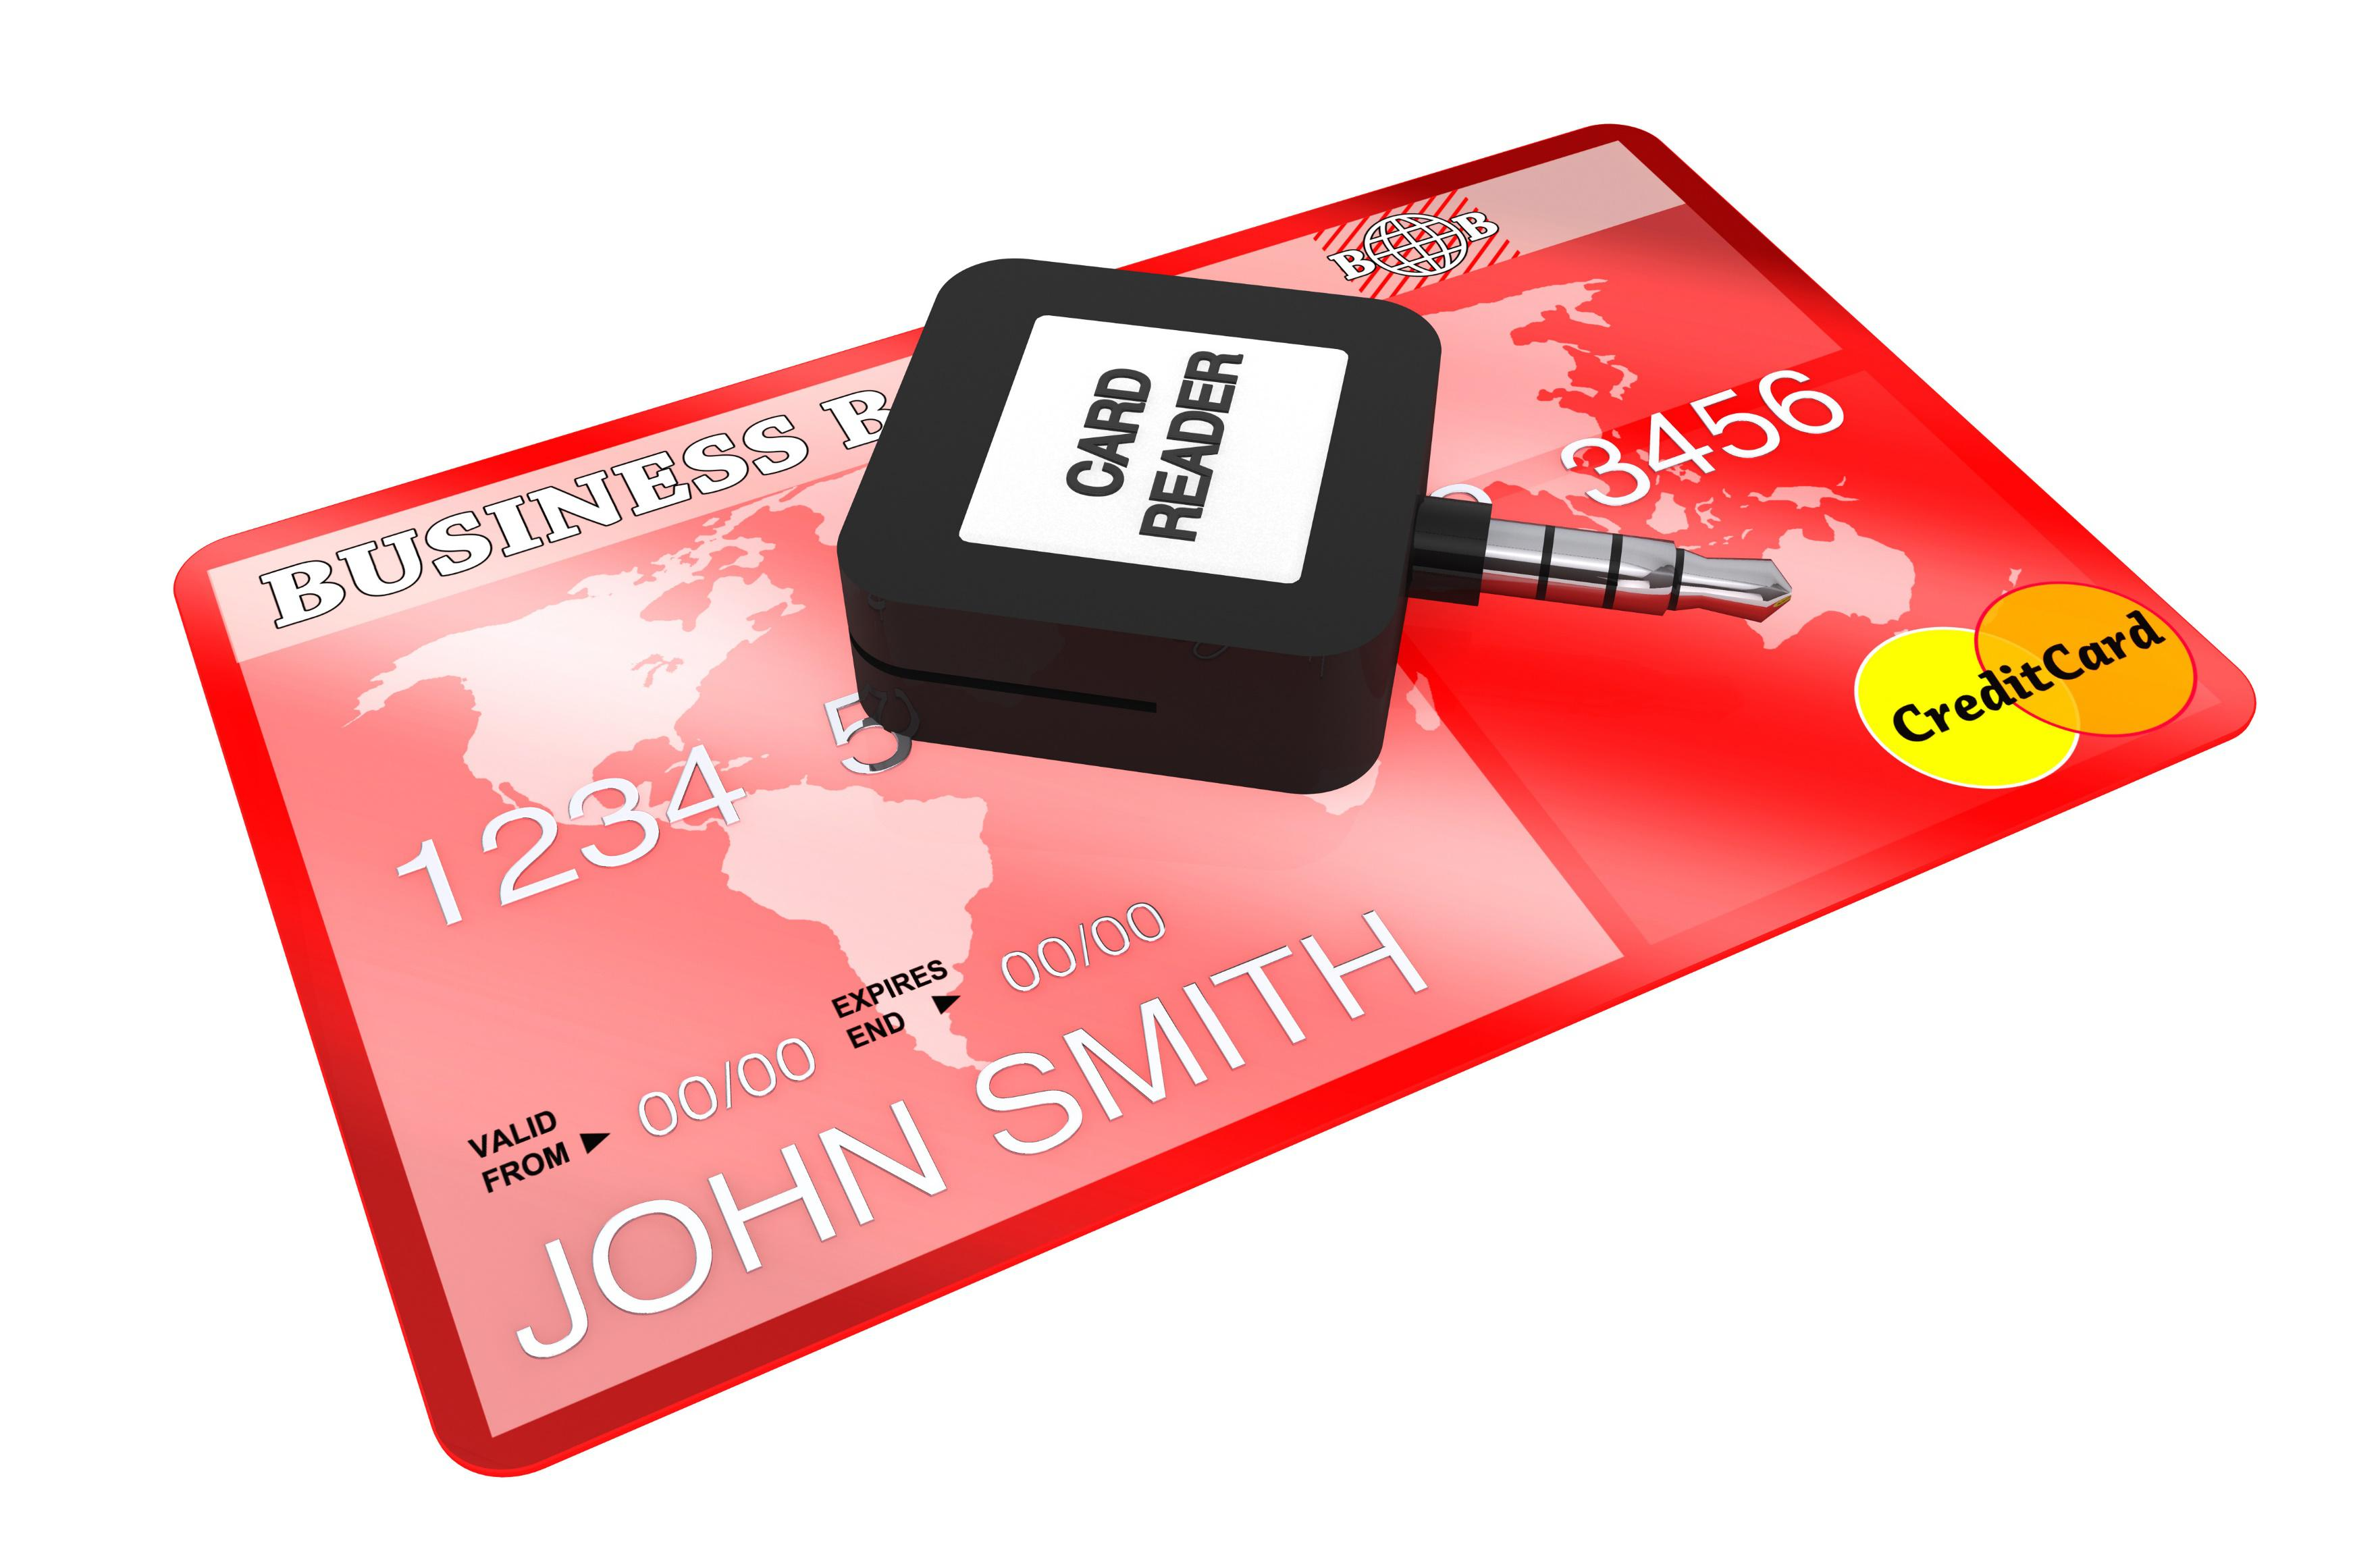 How a portable credit card reader can save your small business for Portable credit card reader for small business